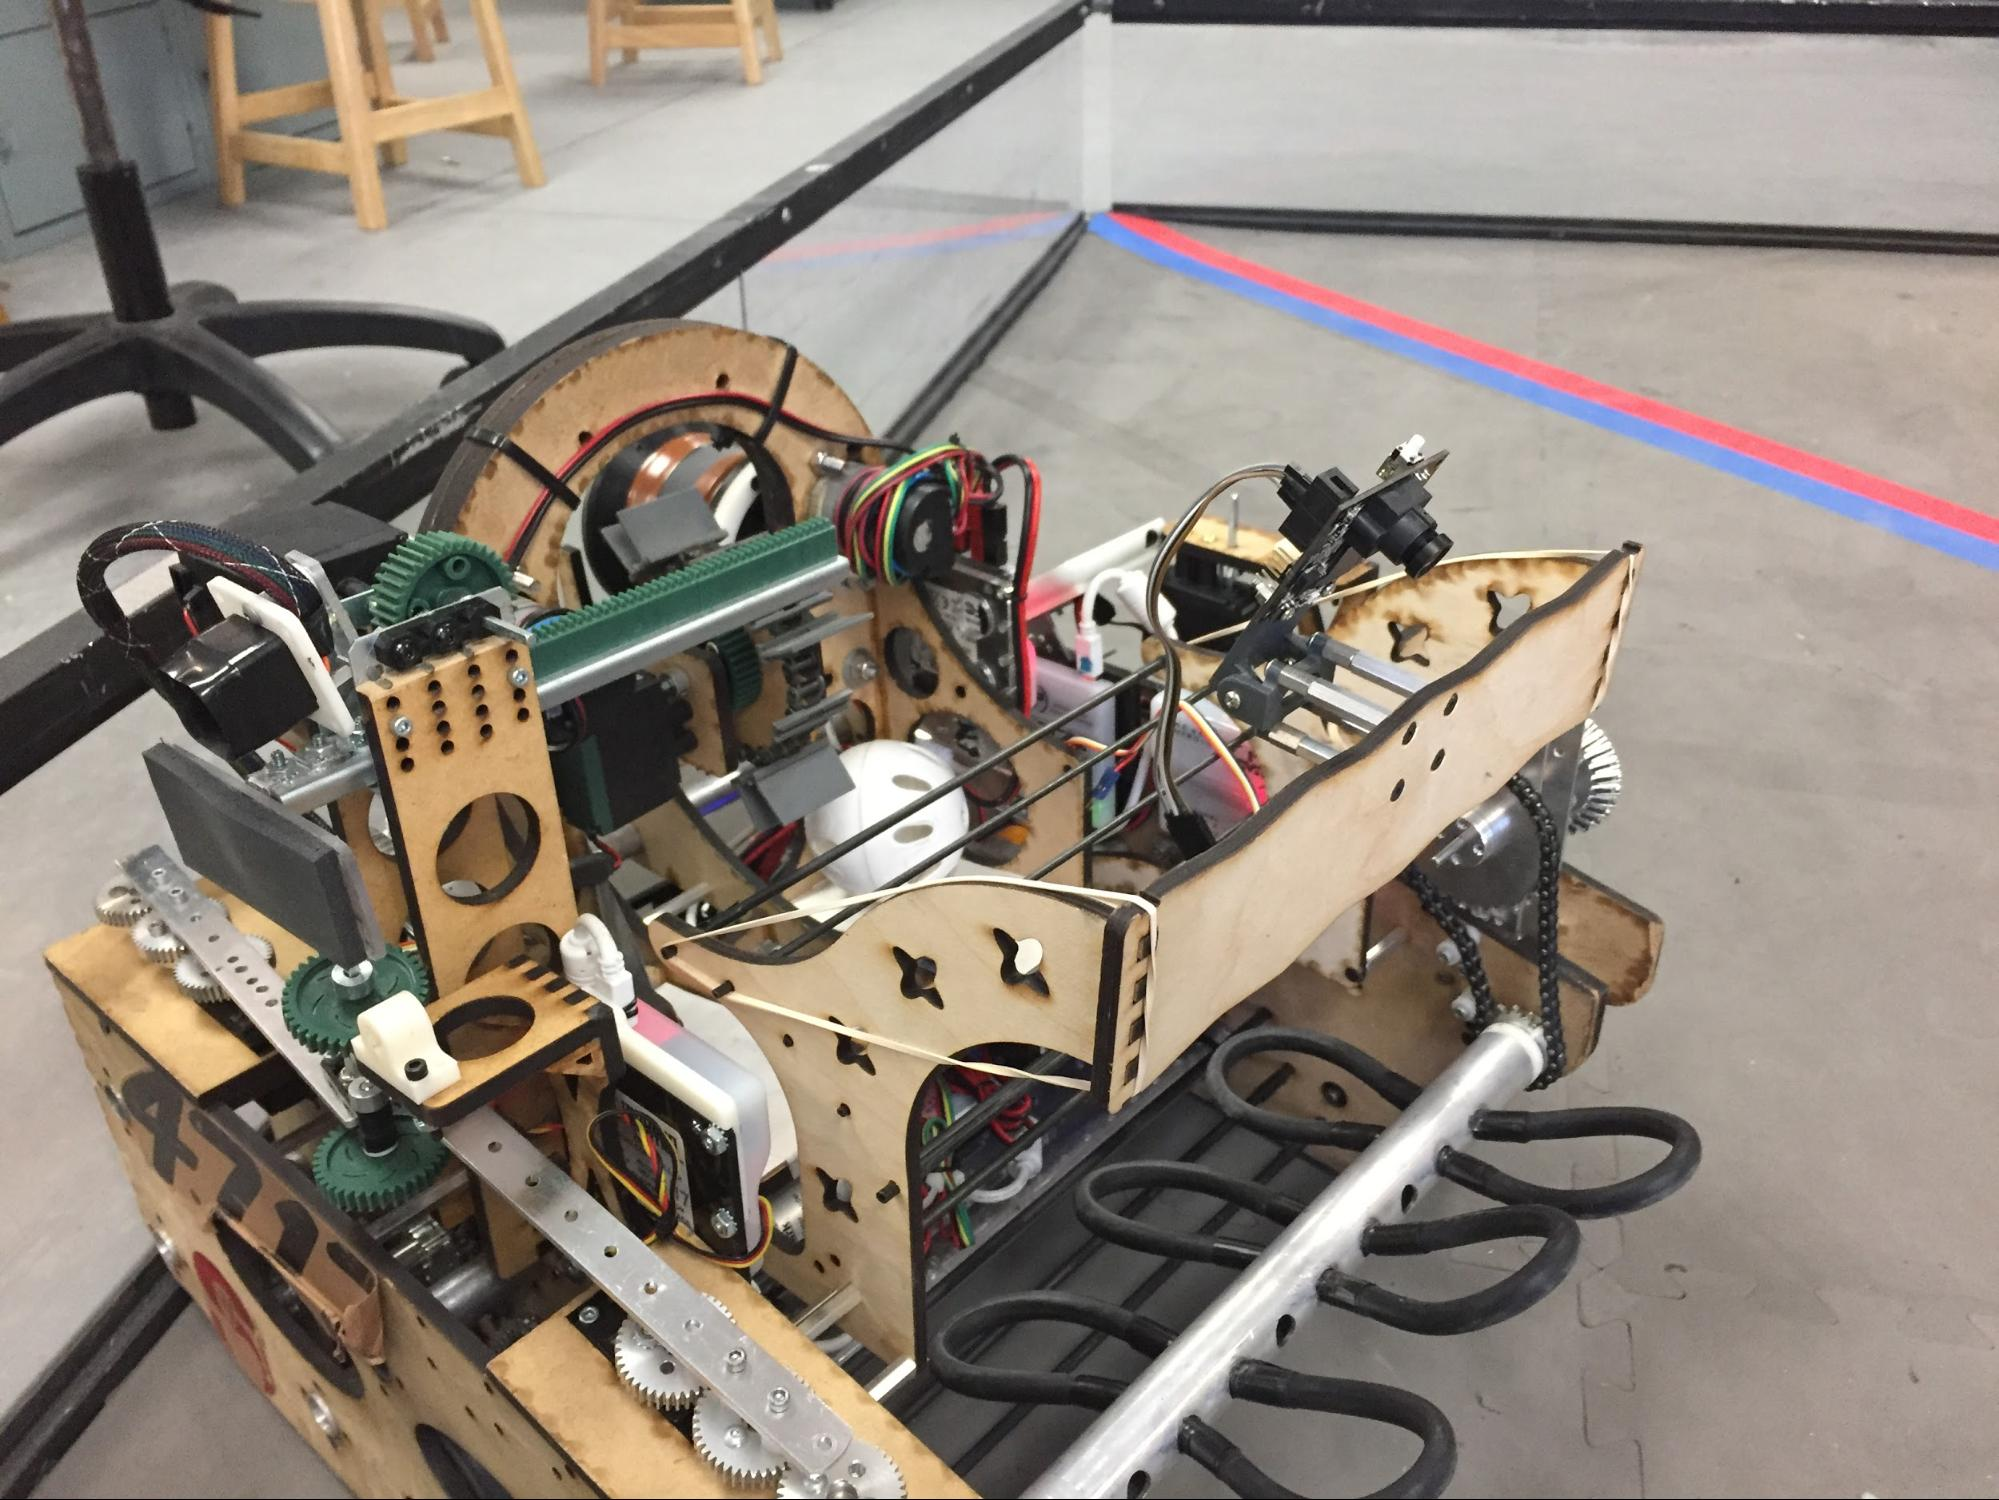 A second photograph of Timbur the robot in action during a competition